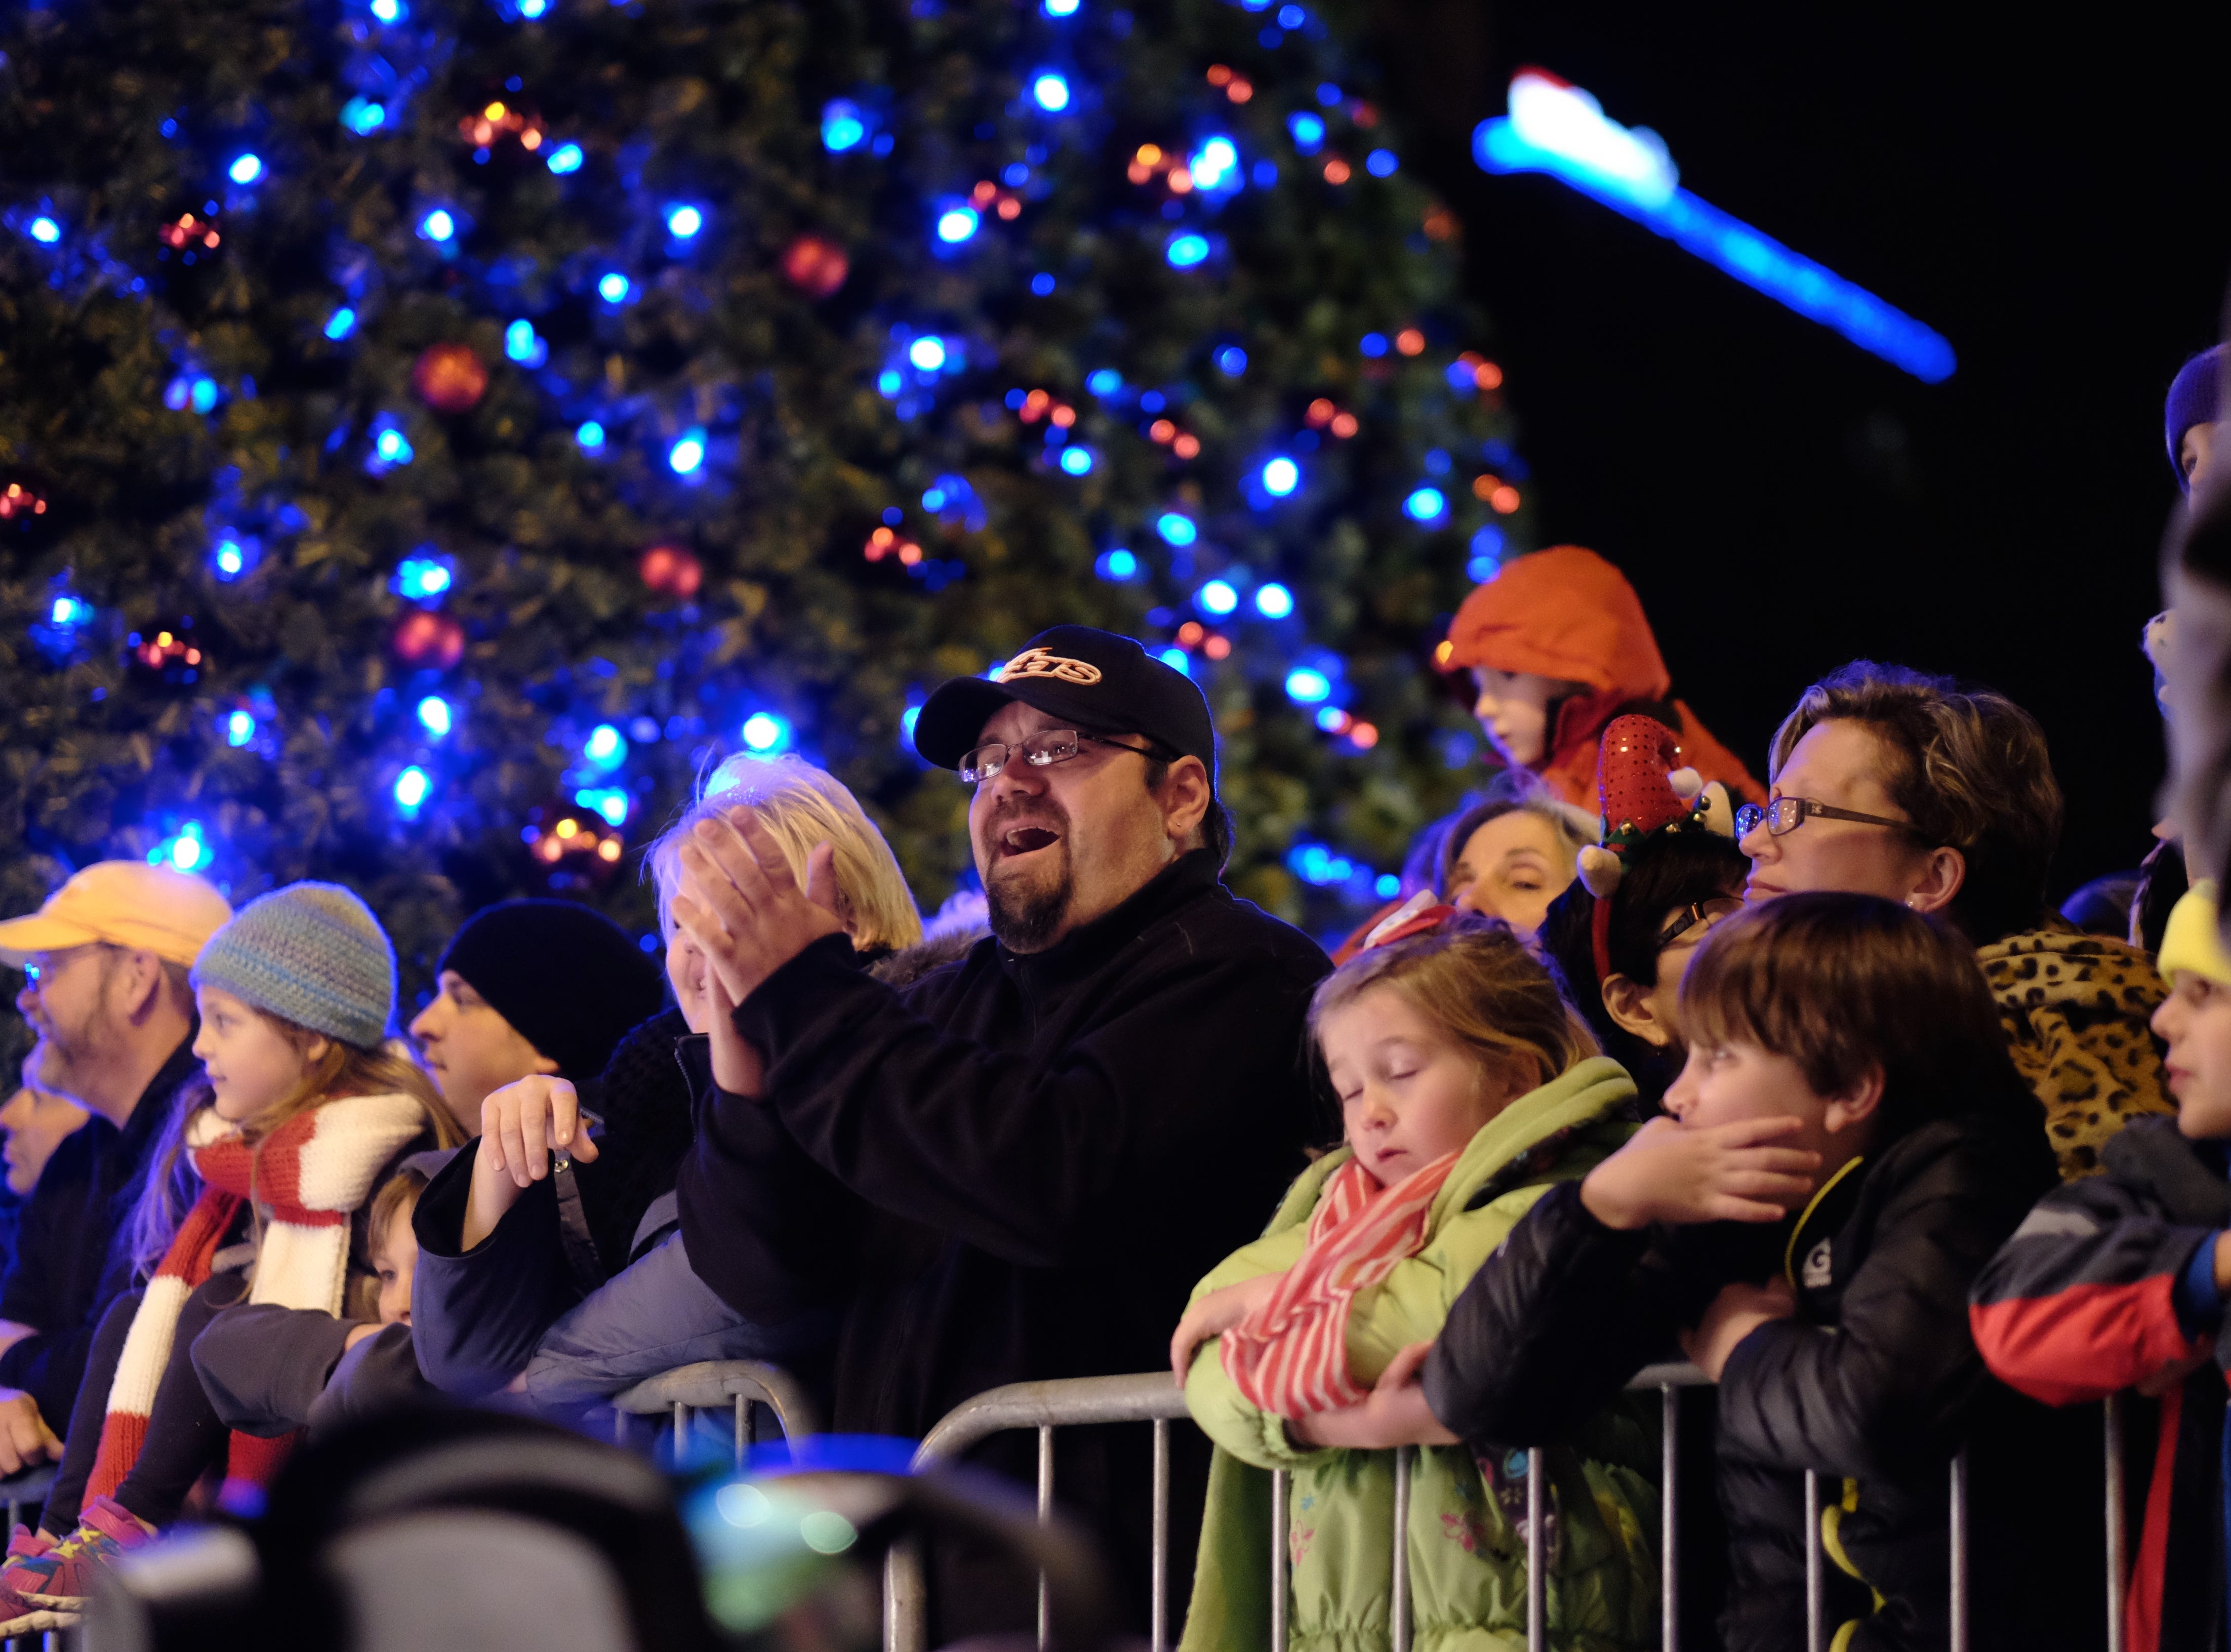 Spectators gather around Gay Street for the 43rd annual WIVK Christmas Parade on Friday, December 4, 2015, in Knoxville.